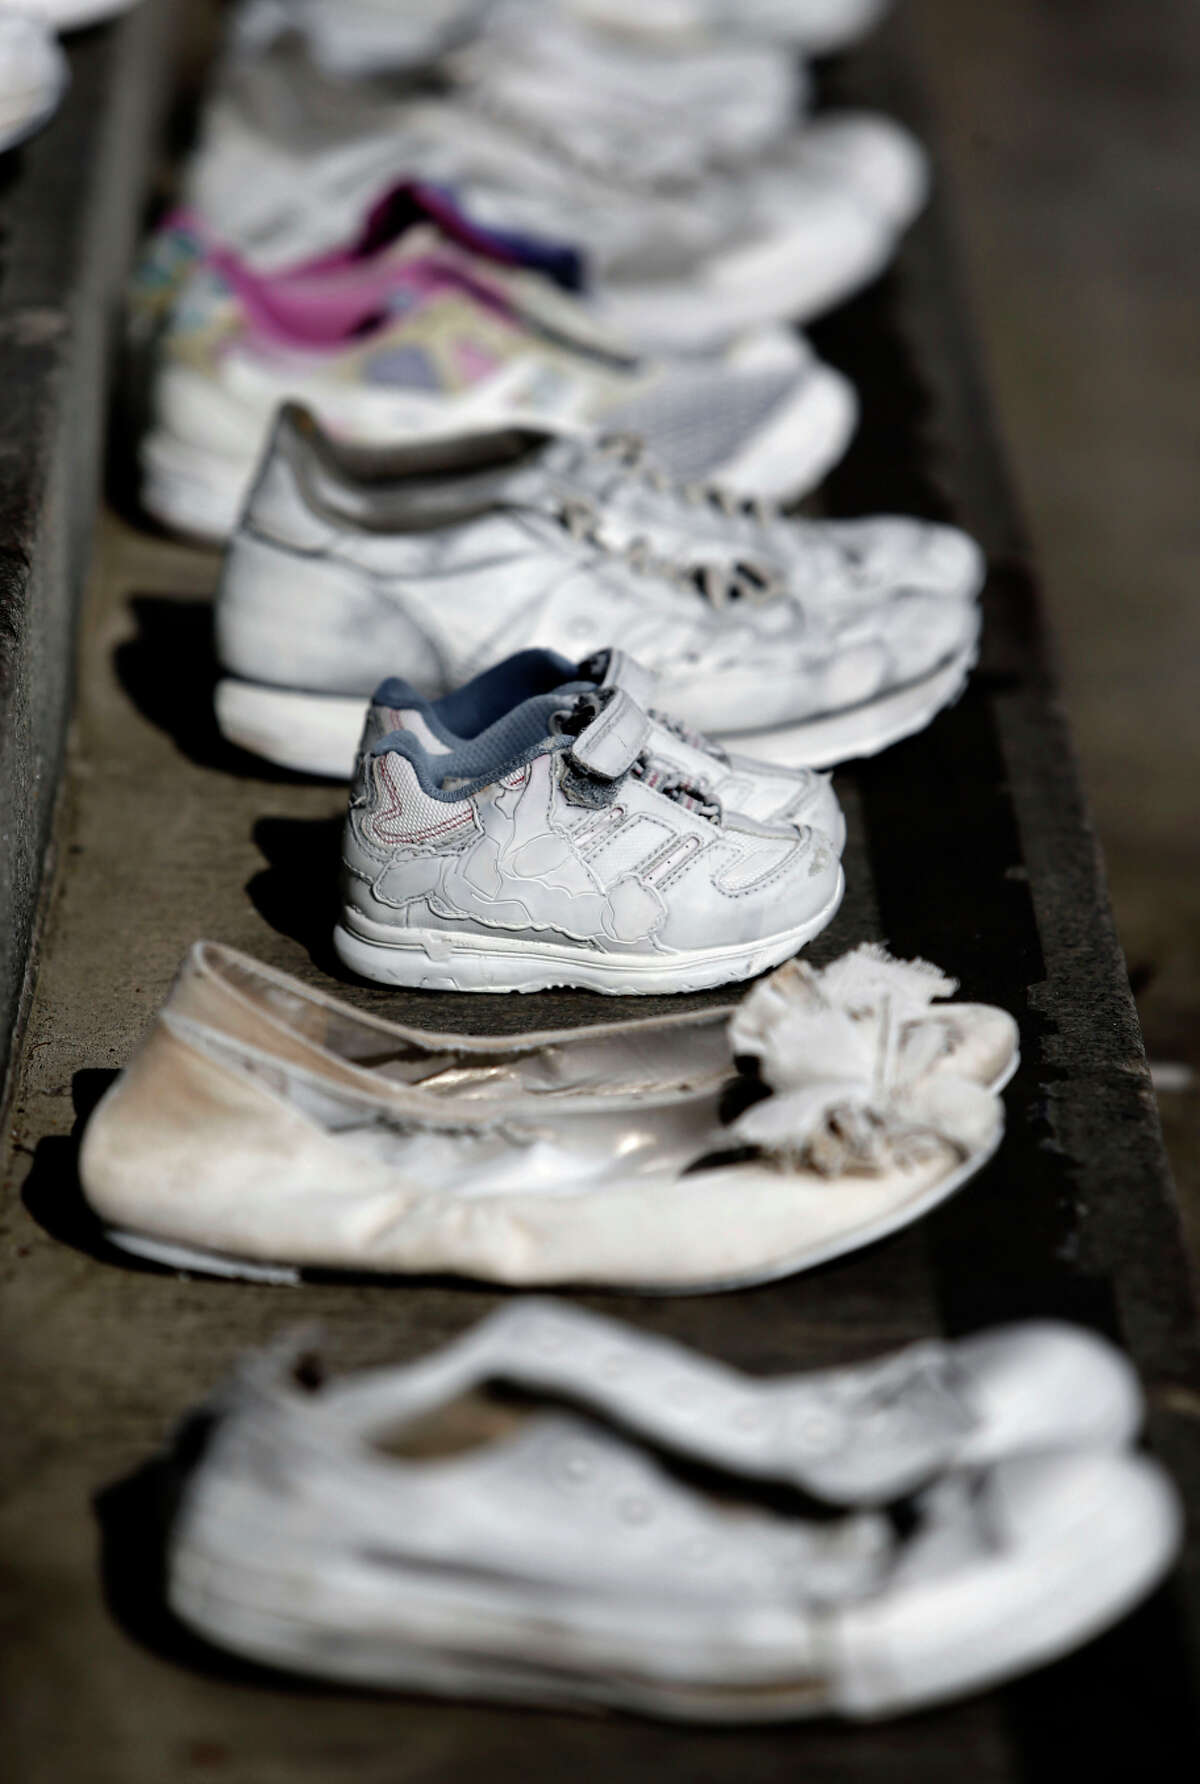 Dozens of pairs of white-painted shoes represent each person killed in a traffic collision in San Francisco this year.